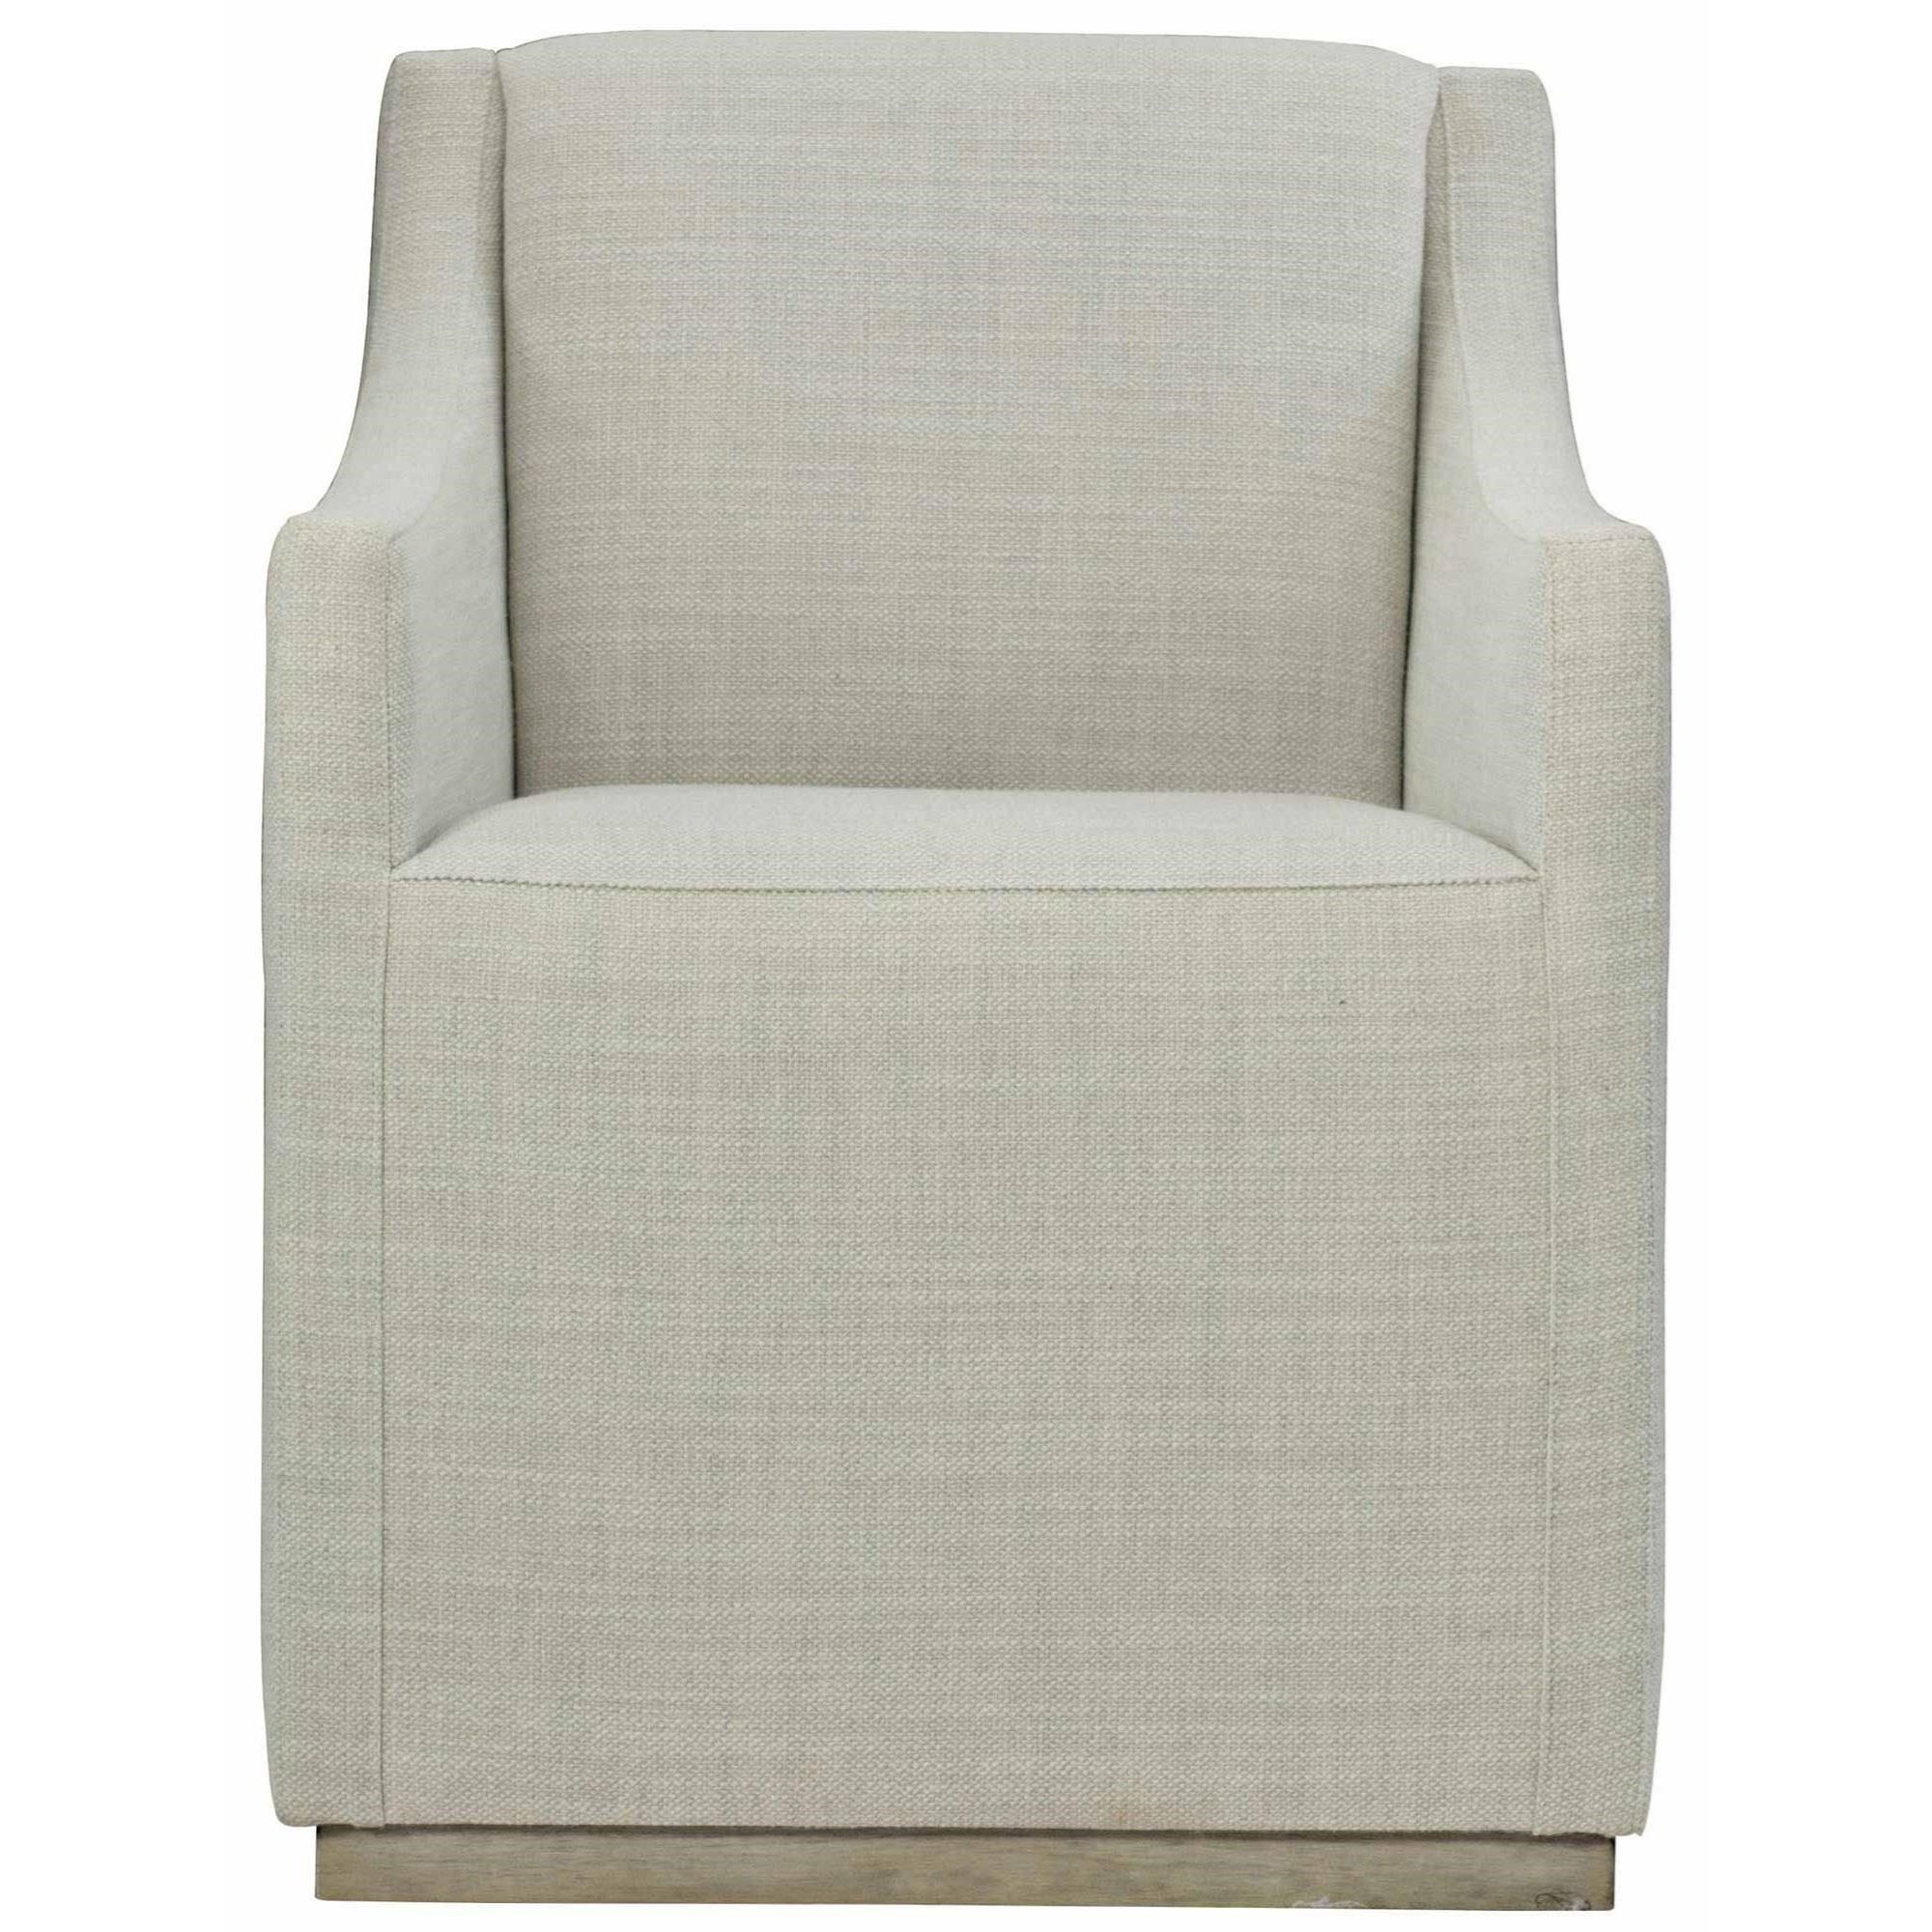 Casey Contemporary Upholstered Dining Arm Chair